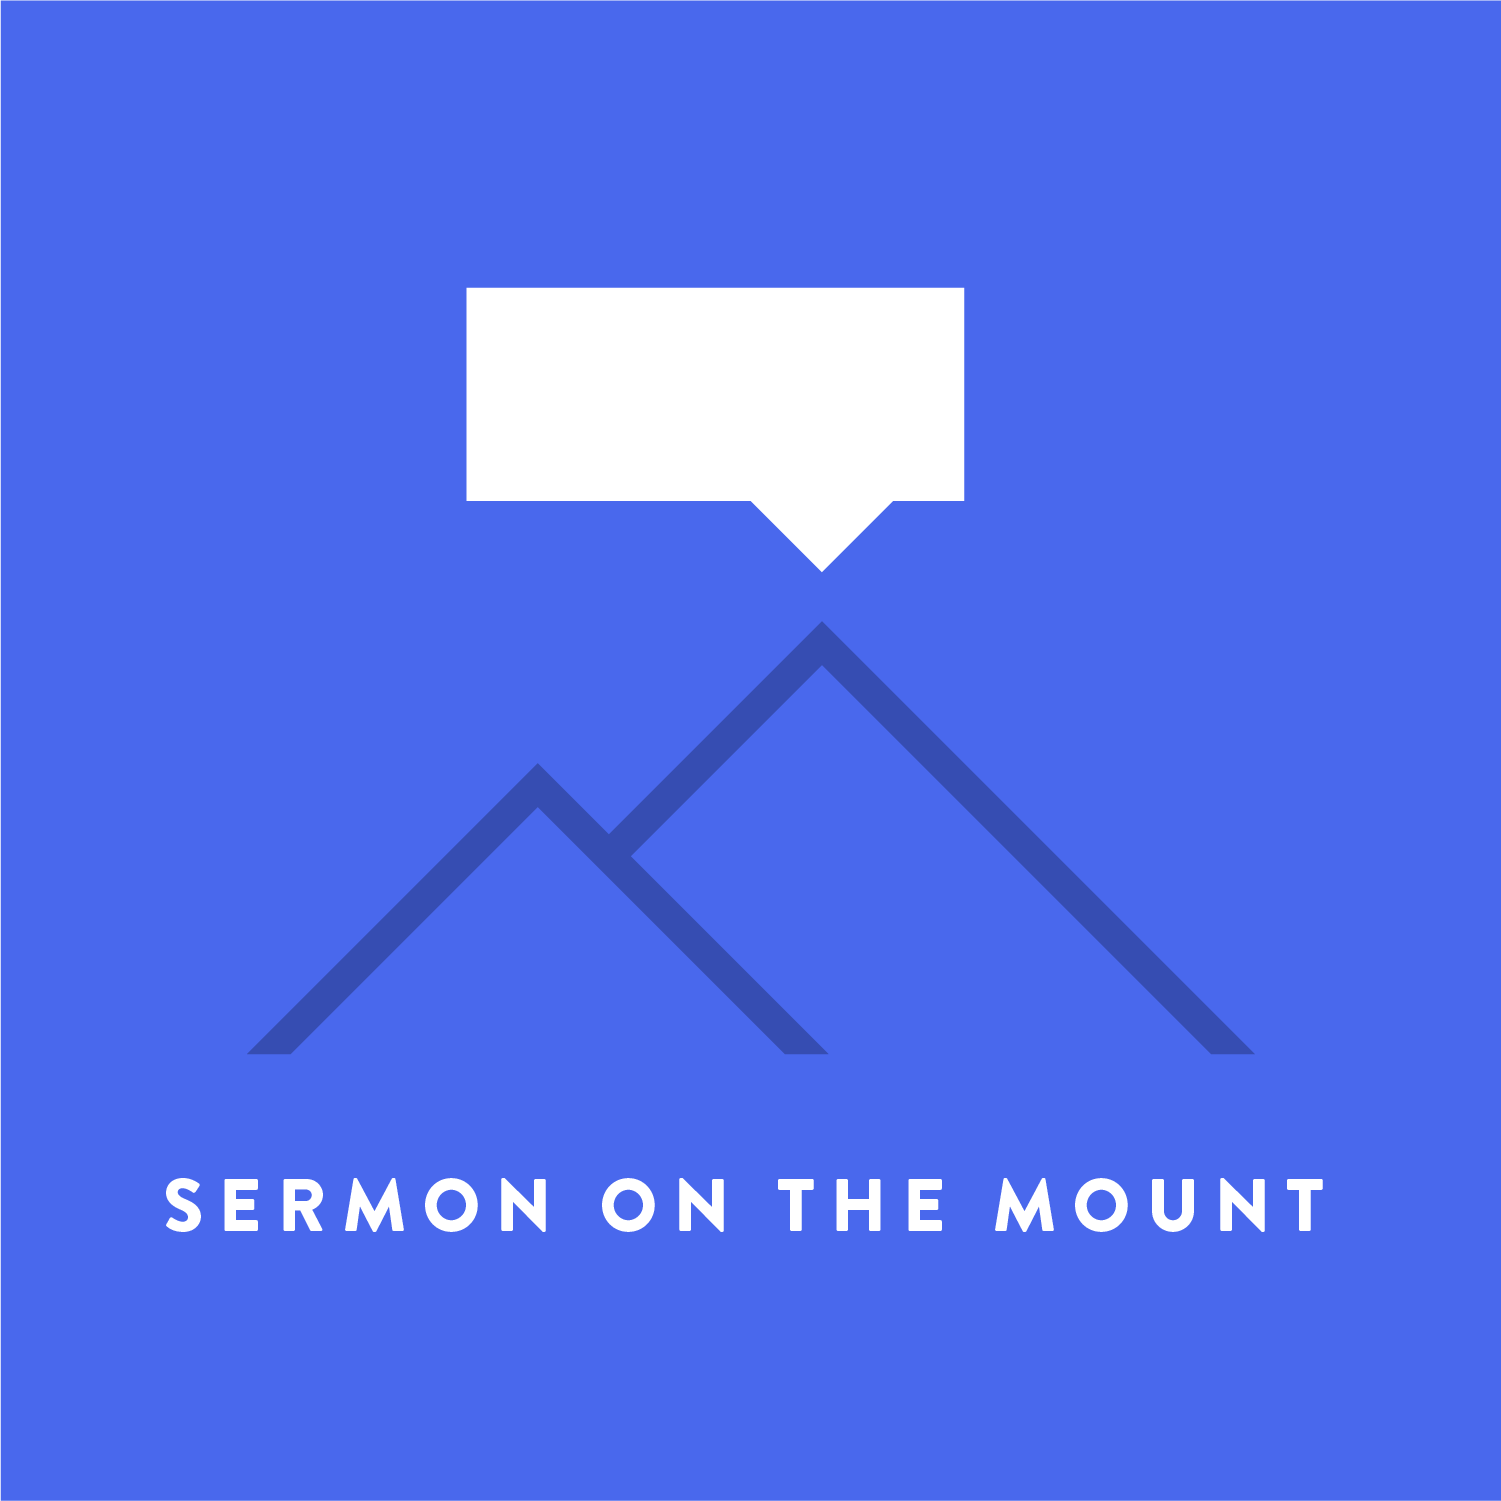 Biblicons_Sermon-on-the-Mount_1x1.png